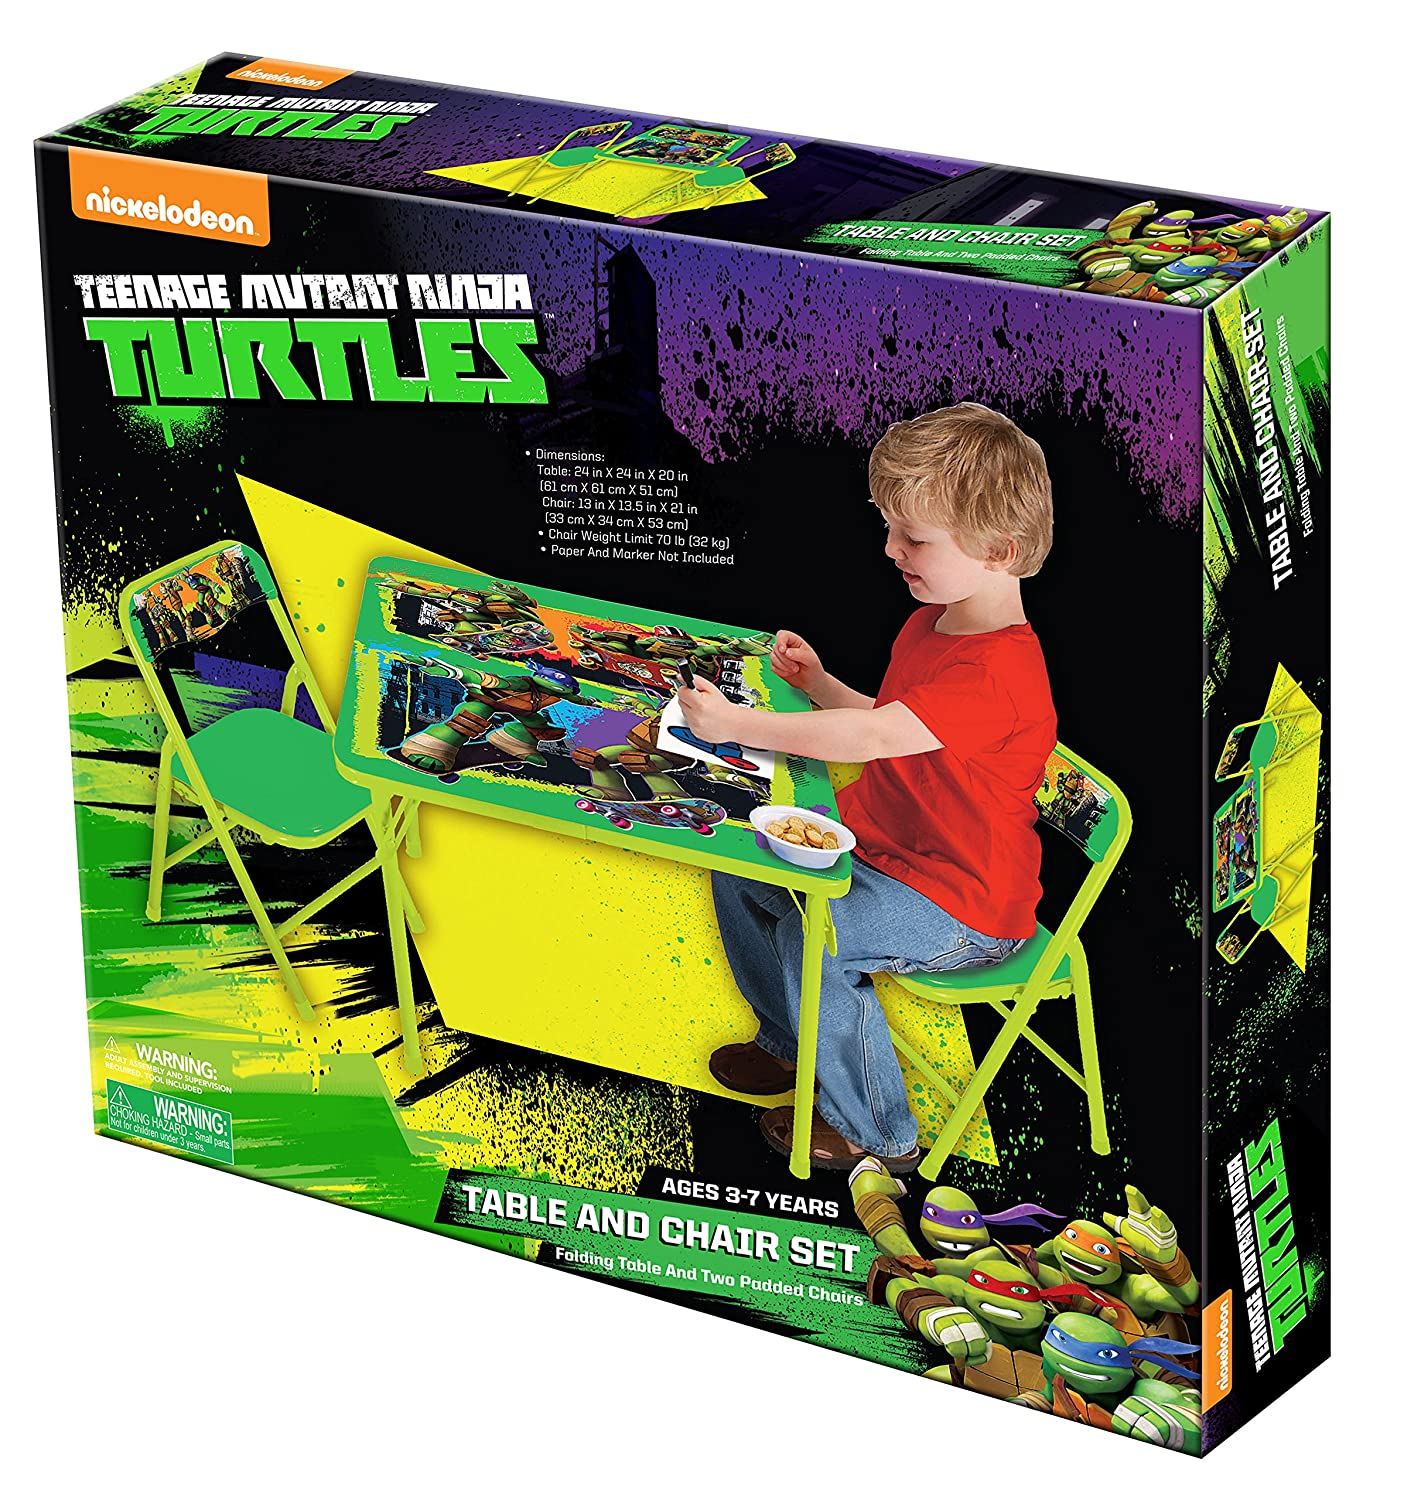 Amazon.com Teenage Mutant Ninja Turtles Maxin and Shellanxin Activity Table Set Toys u0026 Games  sc 1 st  Amazon.com & Amazon.com: Teenage Mutant Ninja Turtles Maxin and Shellanxin ...